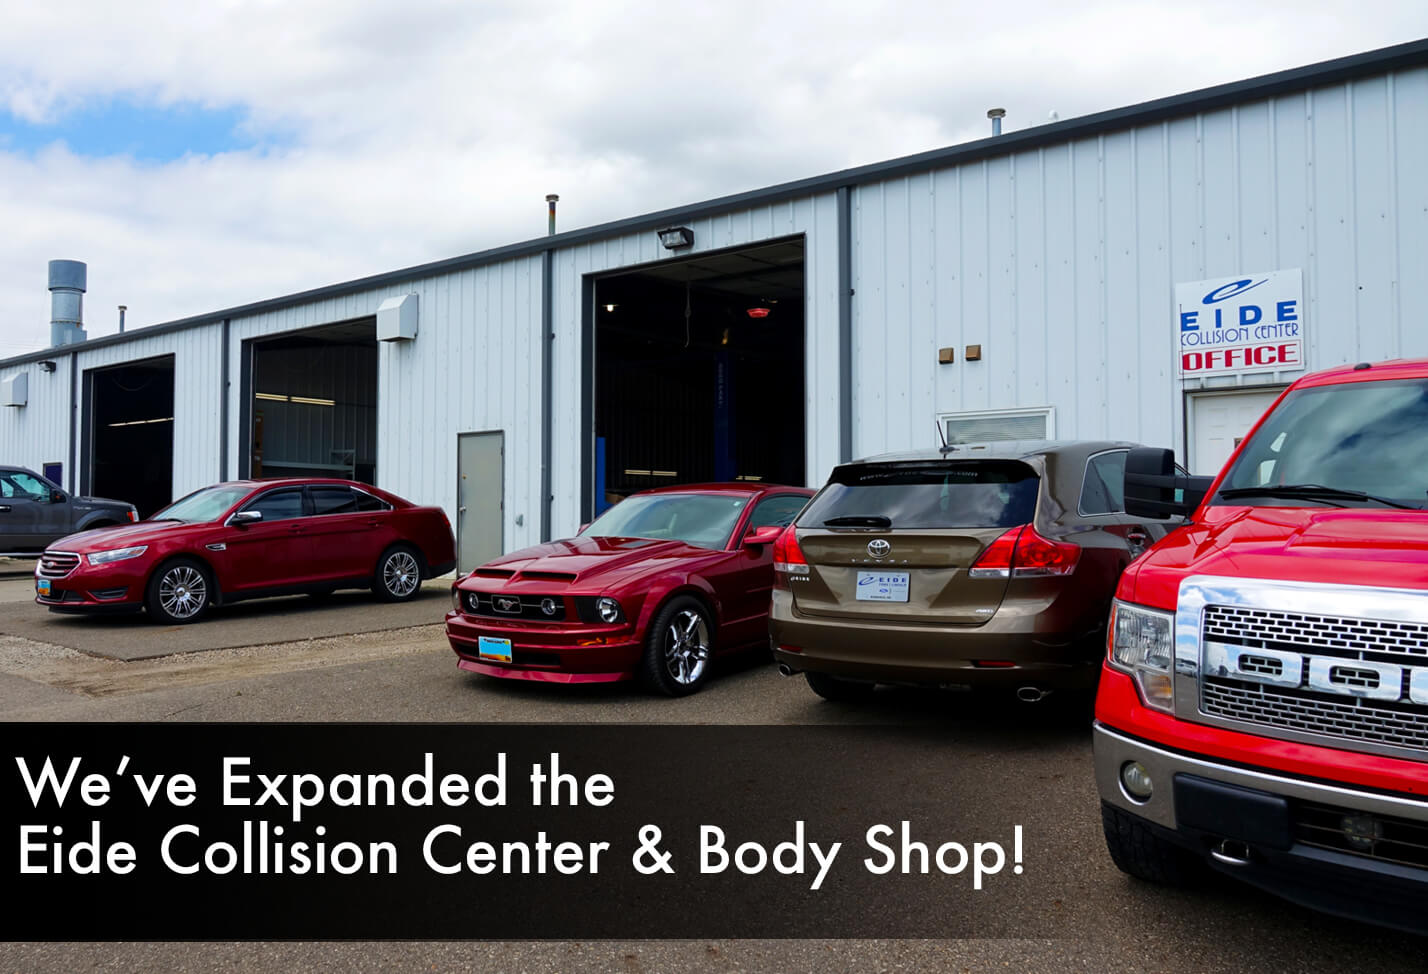 Eide Collision Center in Bismarck